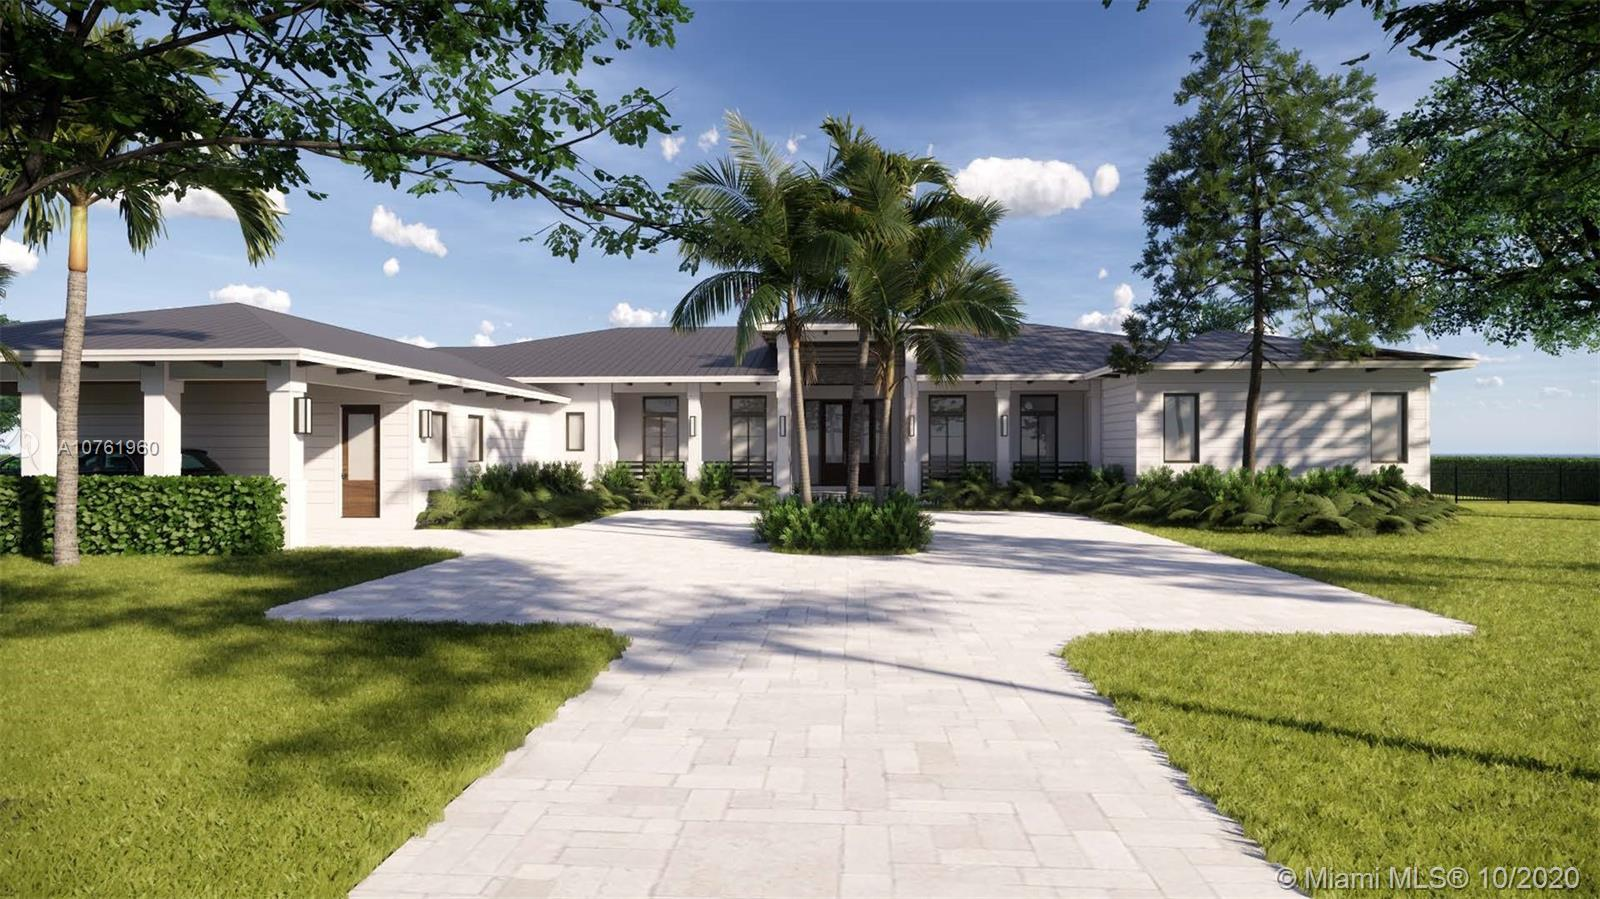 This custom designed new construction home showcases tropical modern architecture while delivering timeless style and legendary Hollub quality and attention to detail. The home features 6 bedrooms, 71/2 baths, a bonus room for ultimate flexibility, family room & lounge with custom bar & fireplace & 3 garages or 2 + a striking carport. Square footage: 9,093, Adj.: 7,667; Living: 6670. This stunning smart home offers sprawling spaces for family gatherings and entertaining. Interior design is custom curated to achieve a sophisticated,  organic aesthetic.  Enjoy large covered patio spaces offset with a lush vista, summer kitchen, pool and spa area w/ sauna & steam room for the ultimate South Florida living experience. Generator. Available Q4 2021.